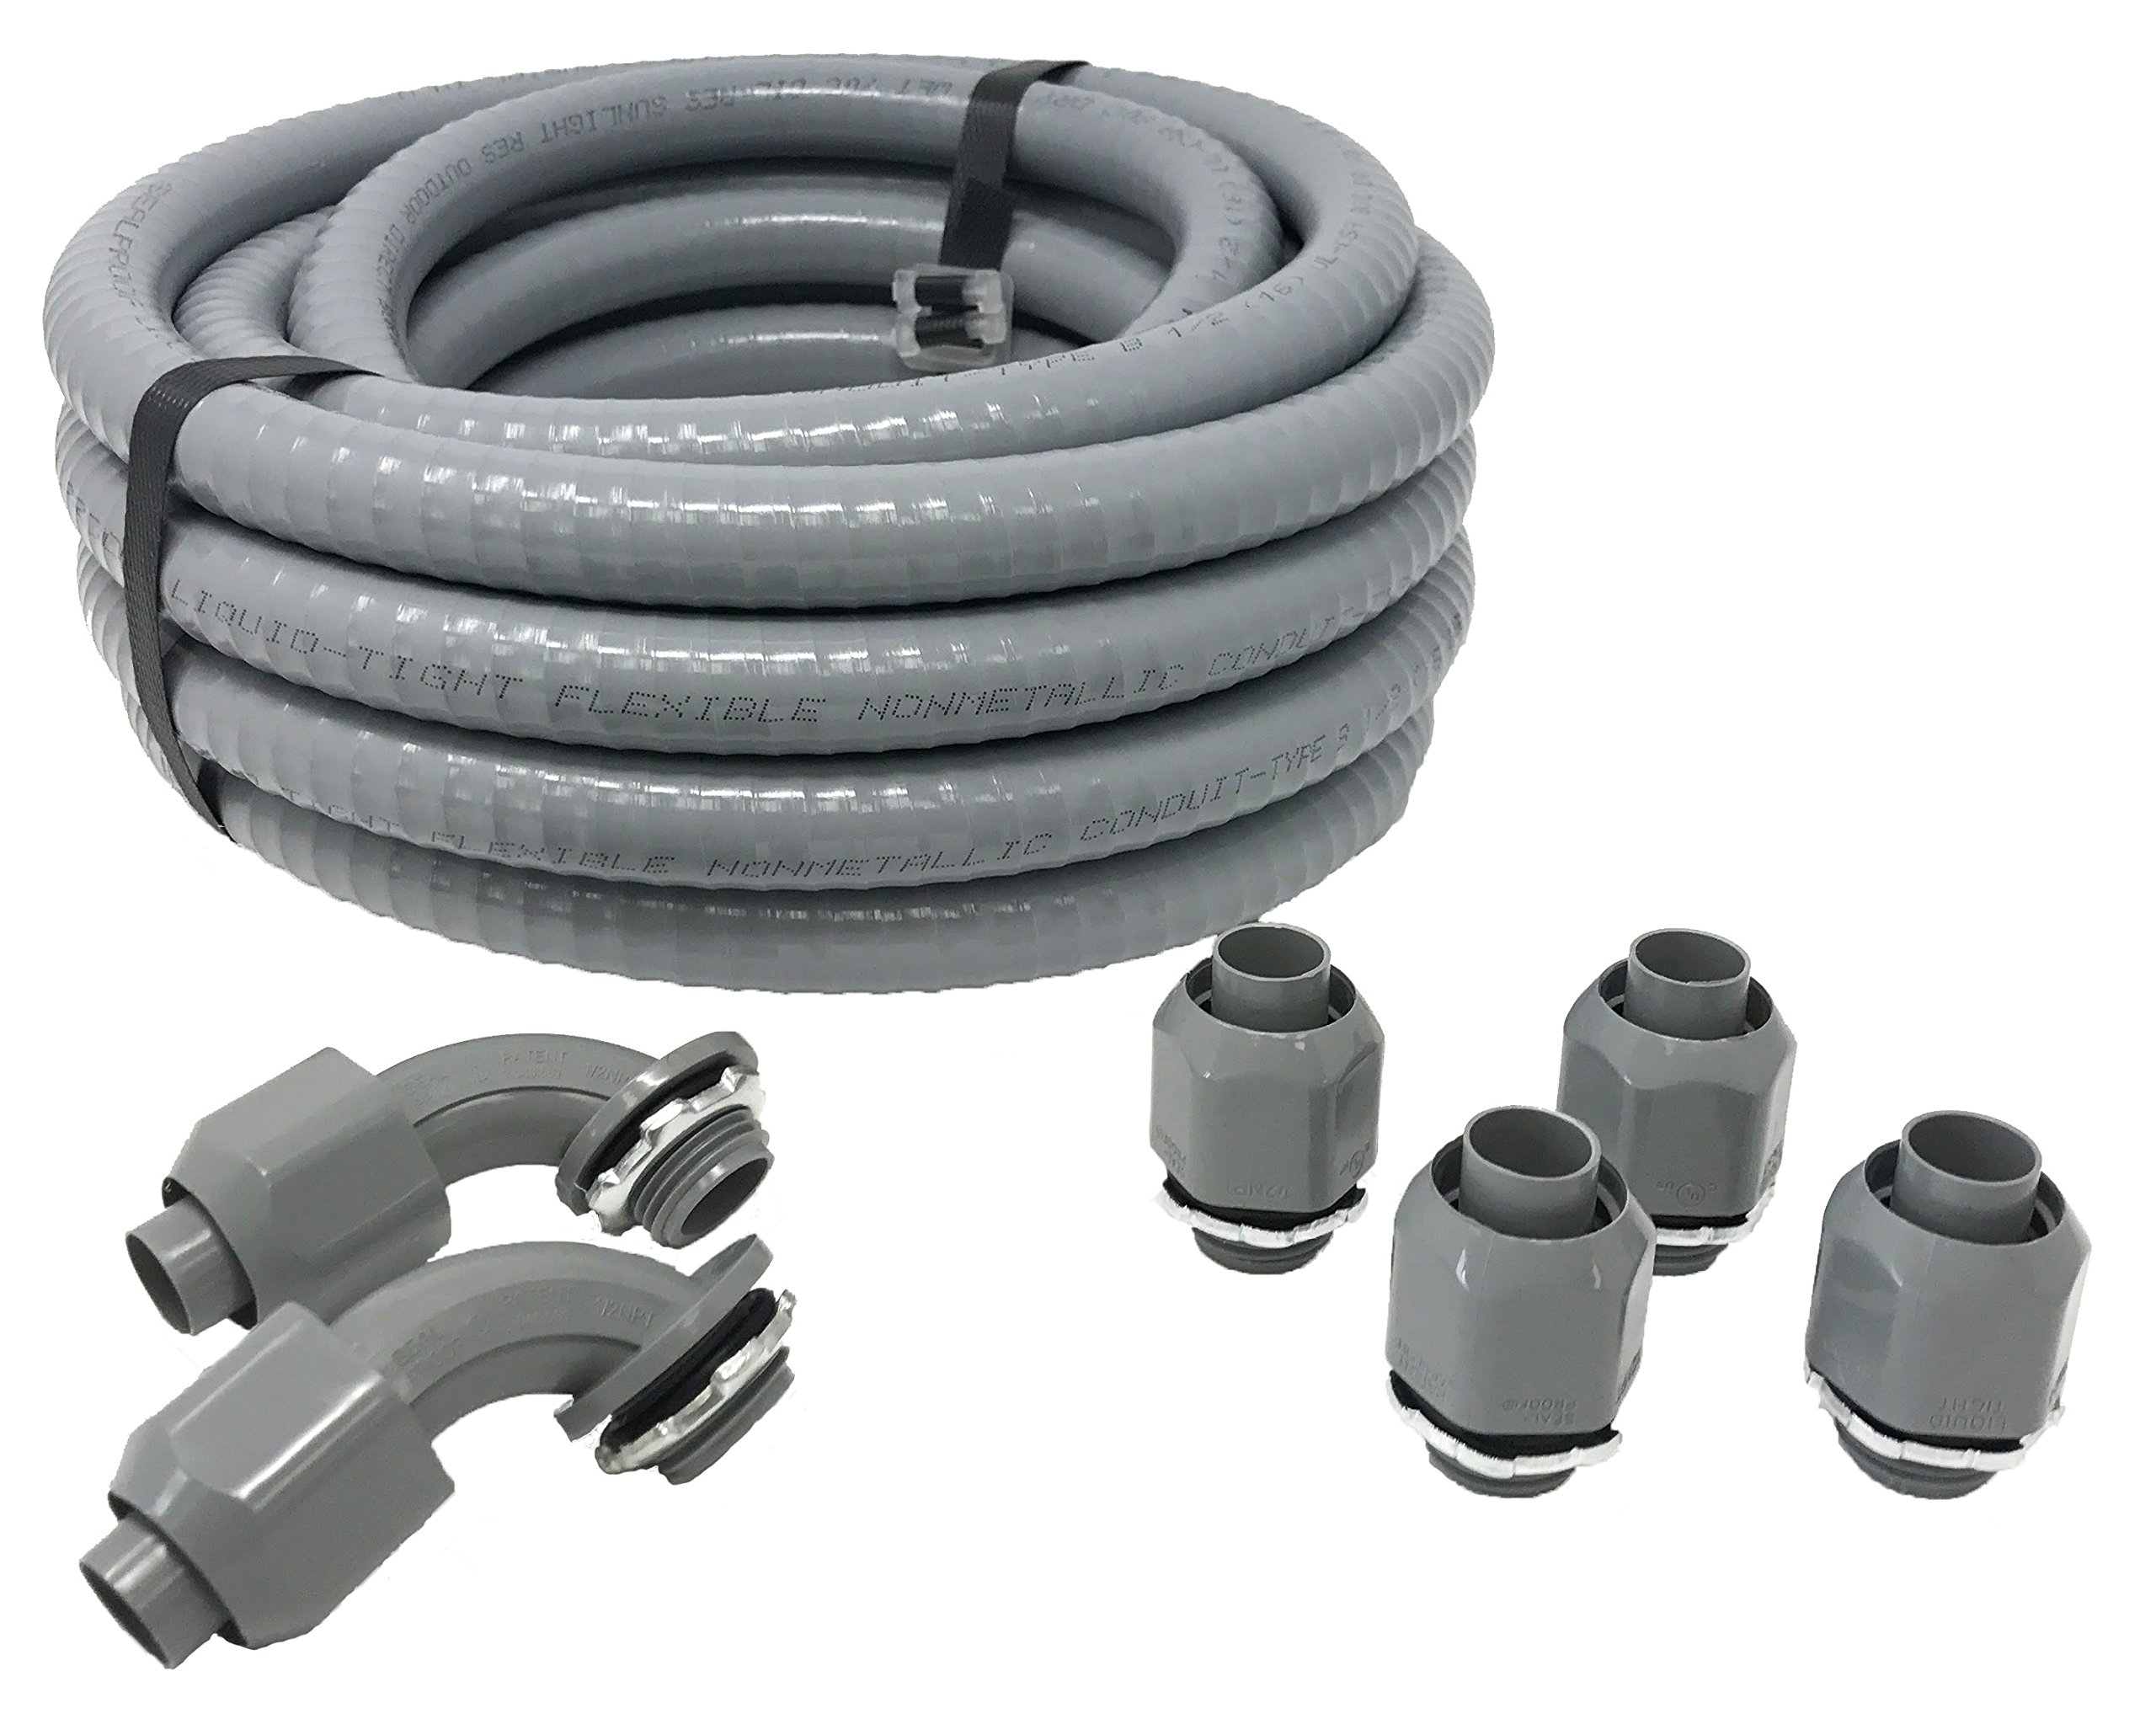 Sealproof Non-metallic Liquid-Tight Conduit and Connector Kit, 1/2-Inch 25 Foot Flexible Electrical Conduit Type B with 4 Straight and 2 90-Degree Conduit Connector Fittings, 1/2'' Dia